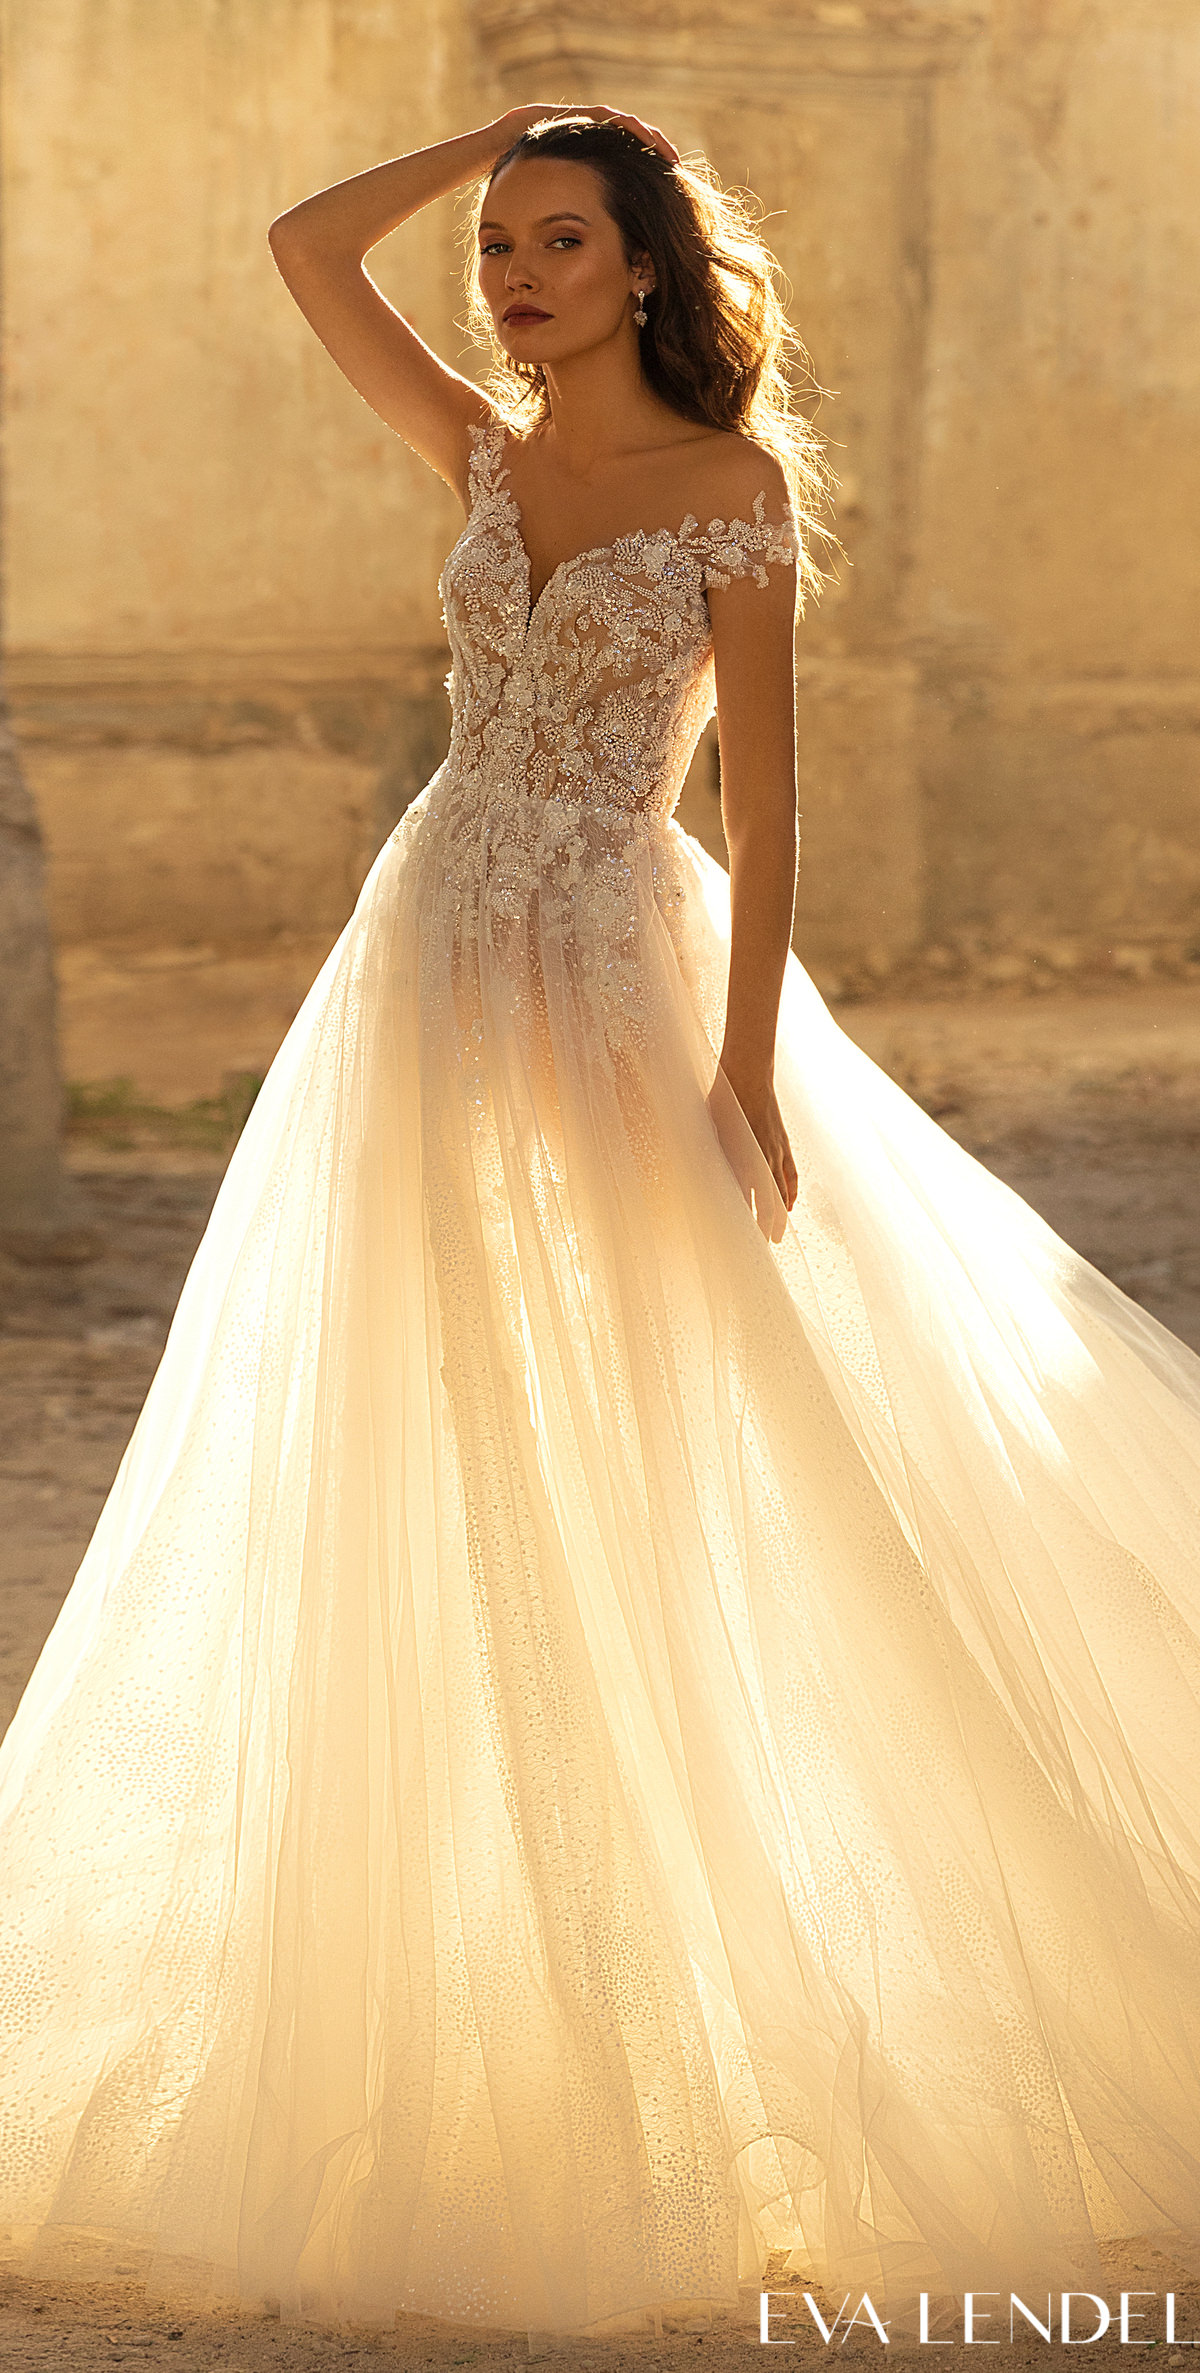 Eva Lendel Wedding Dresses 2021- Golden Hour Collection -Veronika